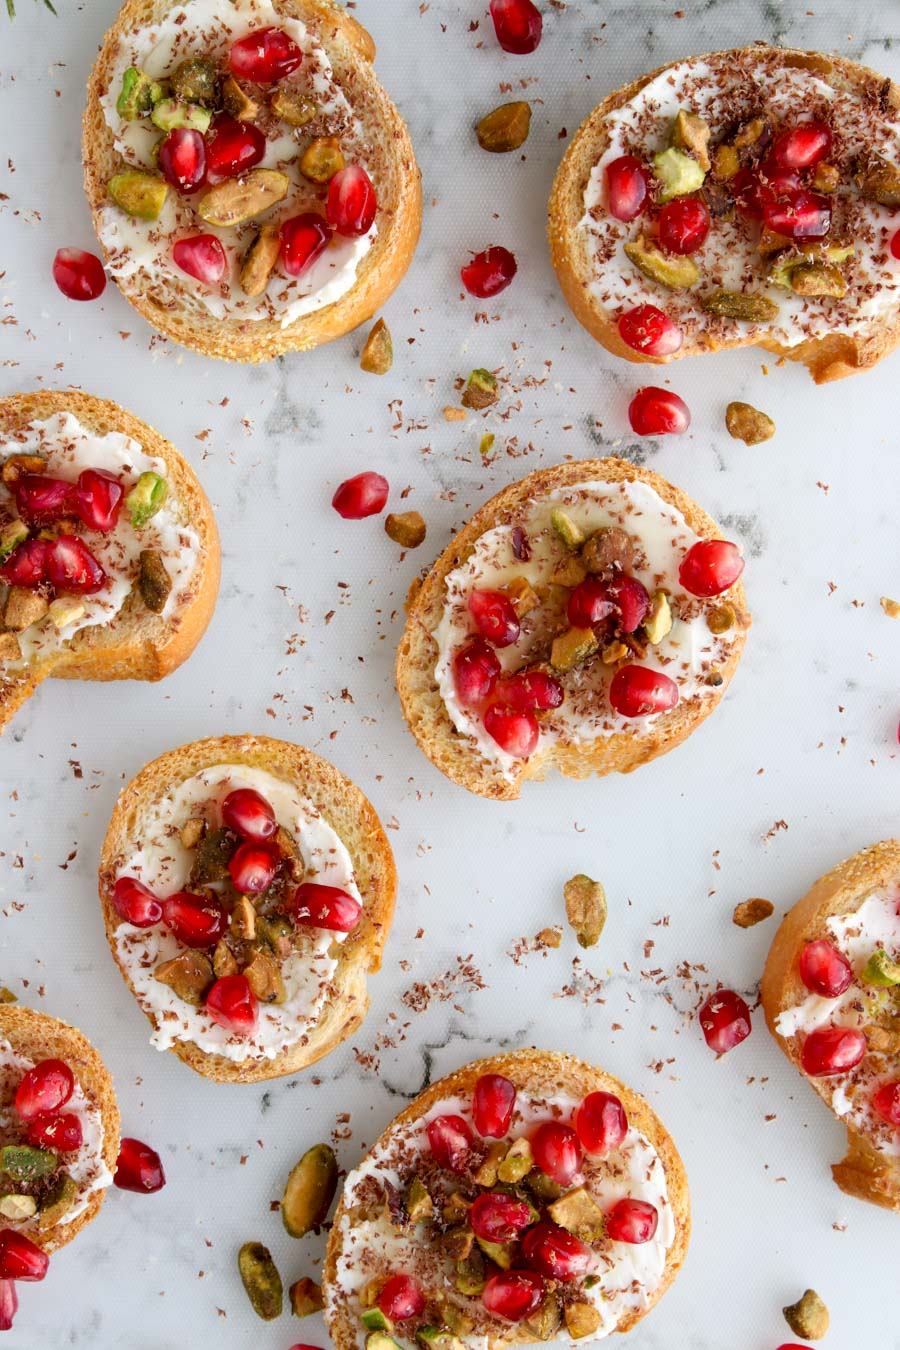 Small toast rounds topped with cream cheese, nuts, and pomegranate seeds